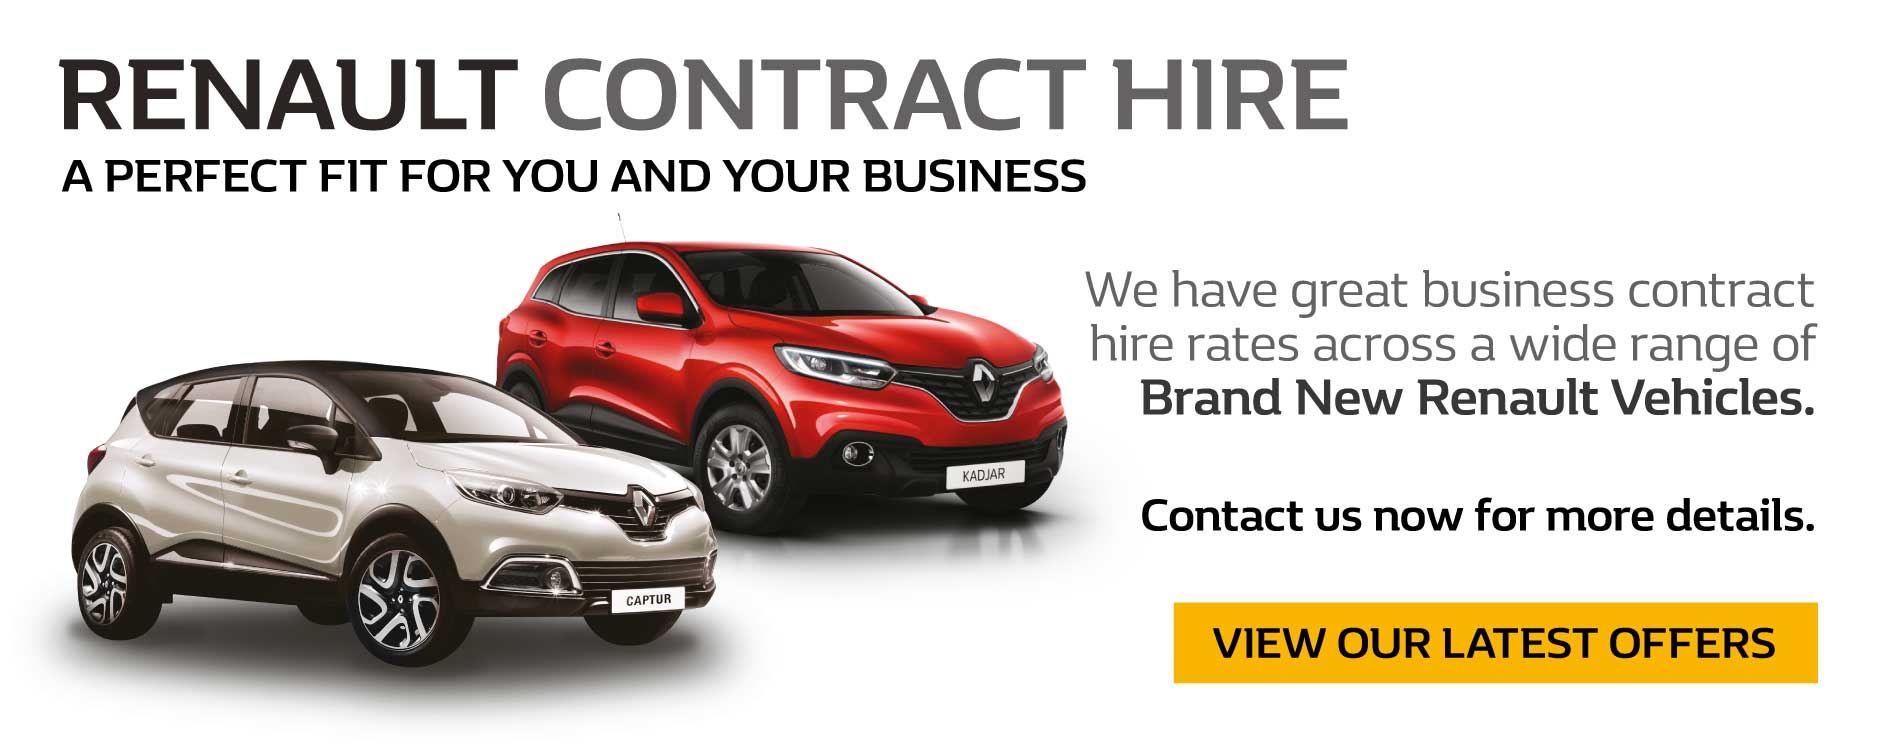 Renault Contract Hire Offers